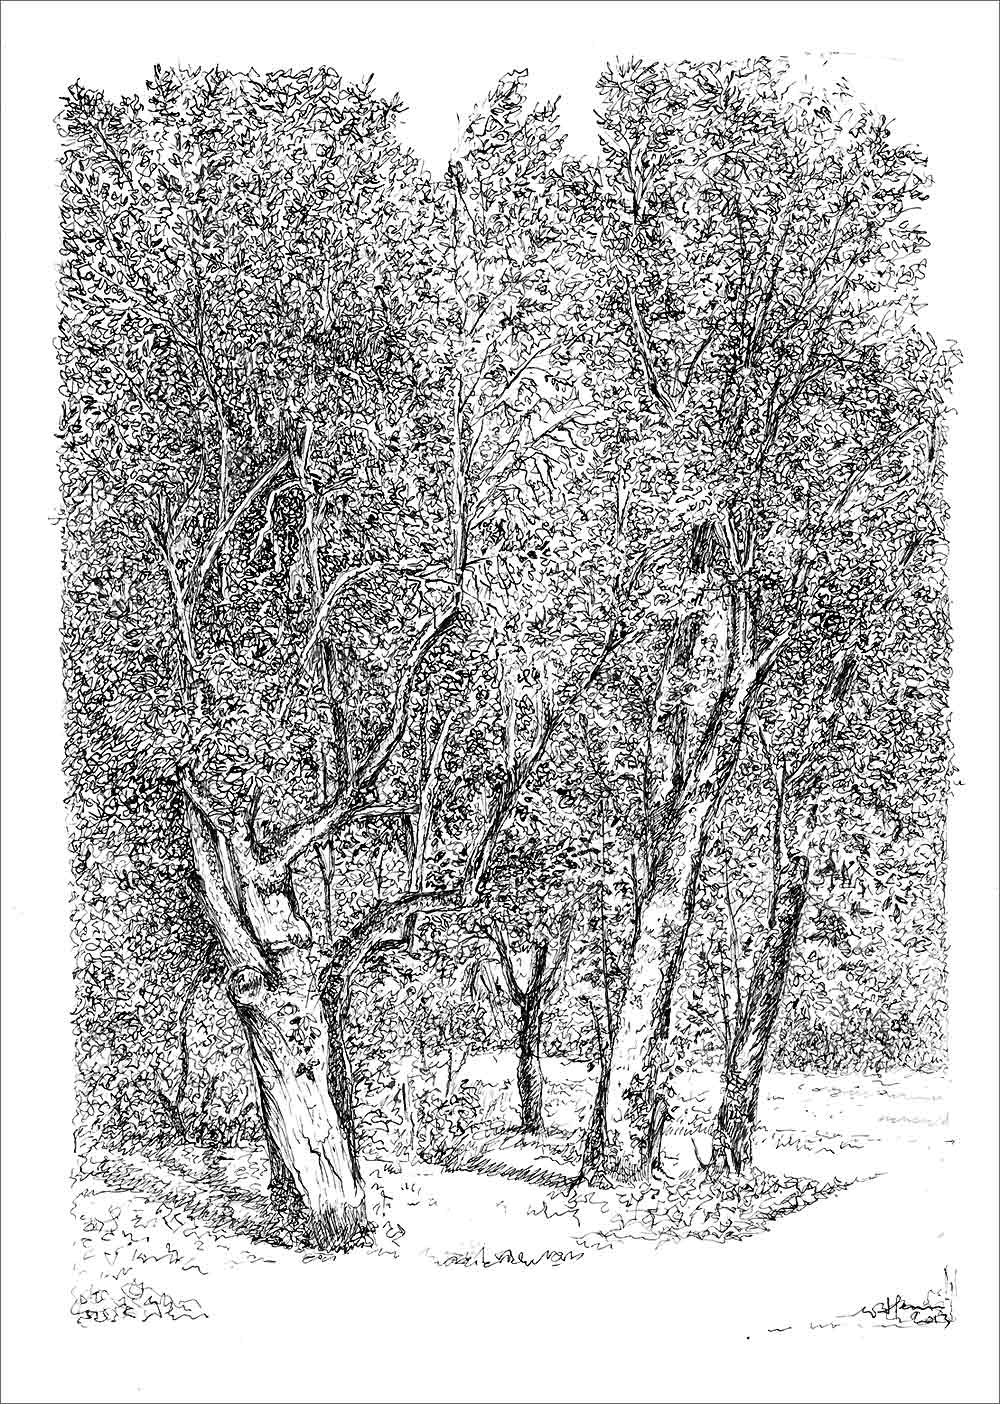 Henri Blanc dessins à la plume - Frissons d'ete Saint-Pompon tree ink drawing